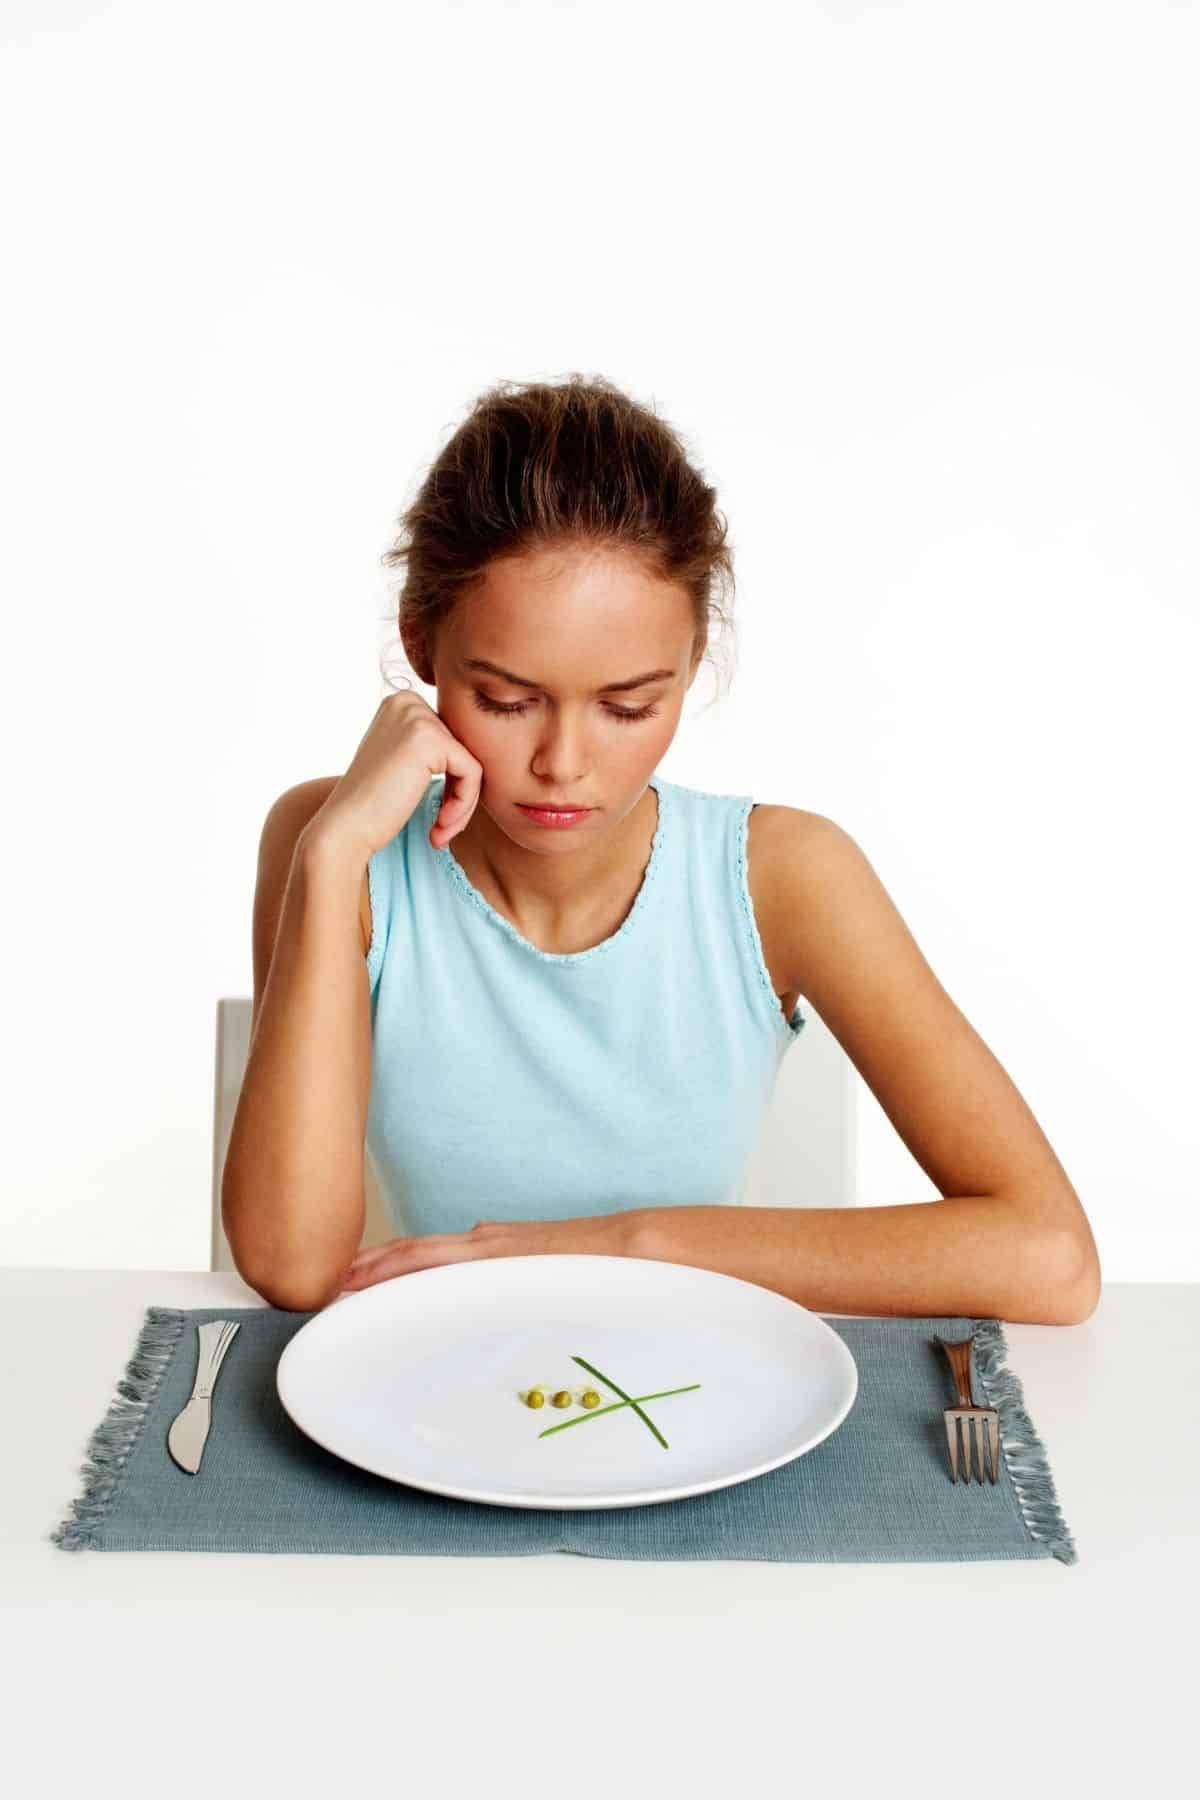 woman sitting in front of a plate with just a little bit of food on it